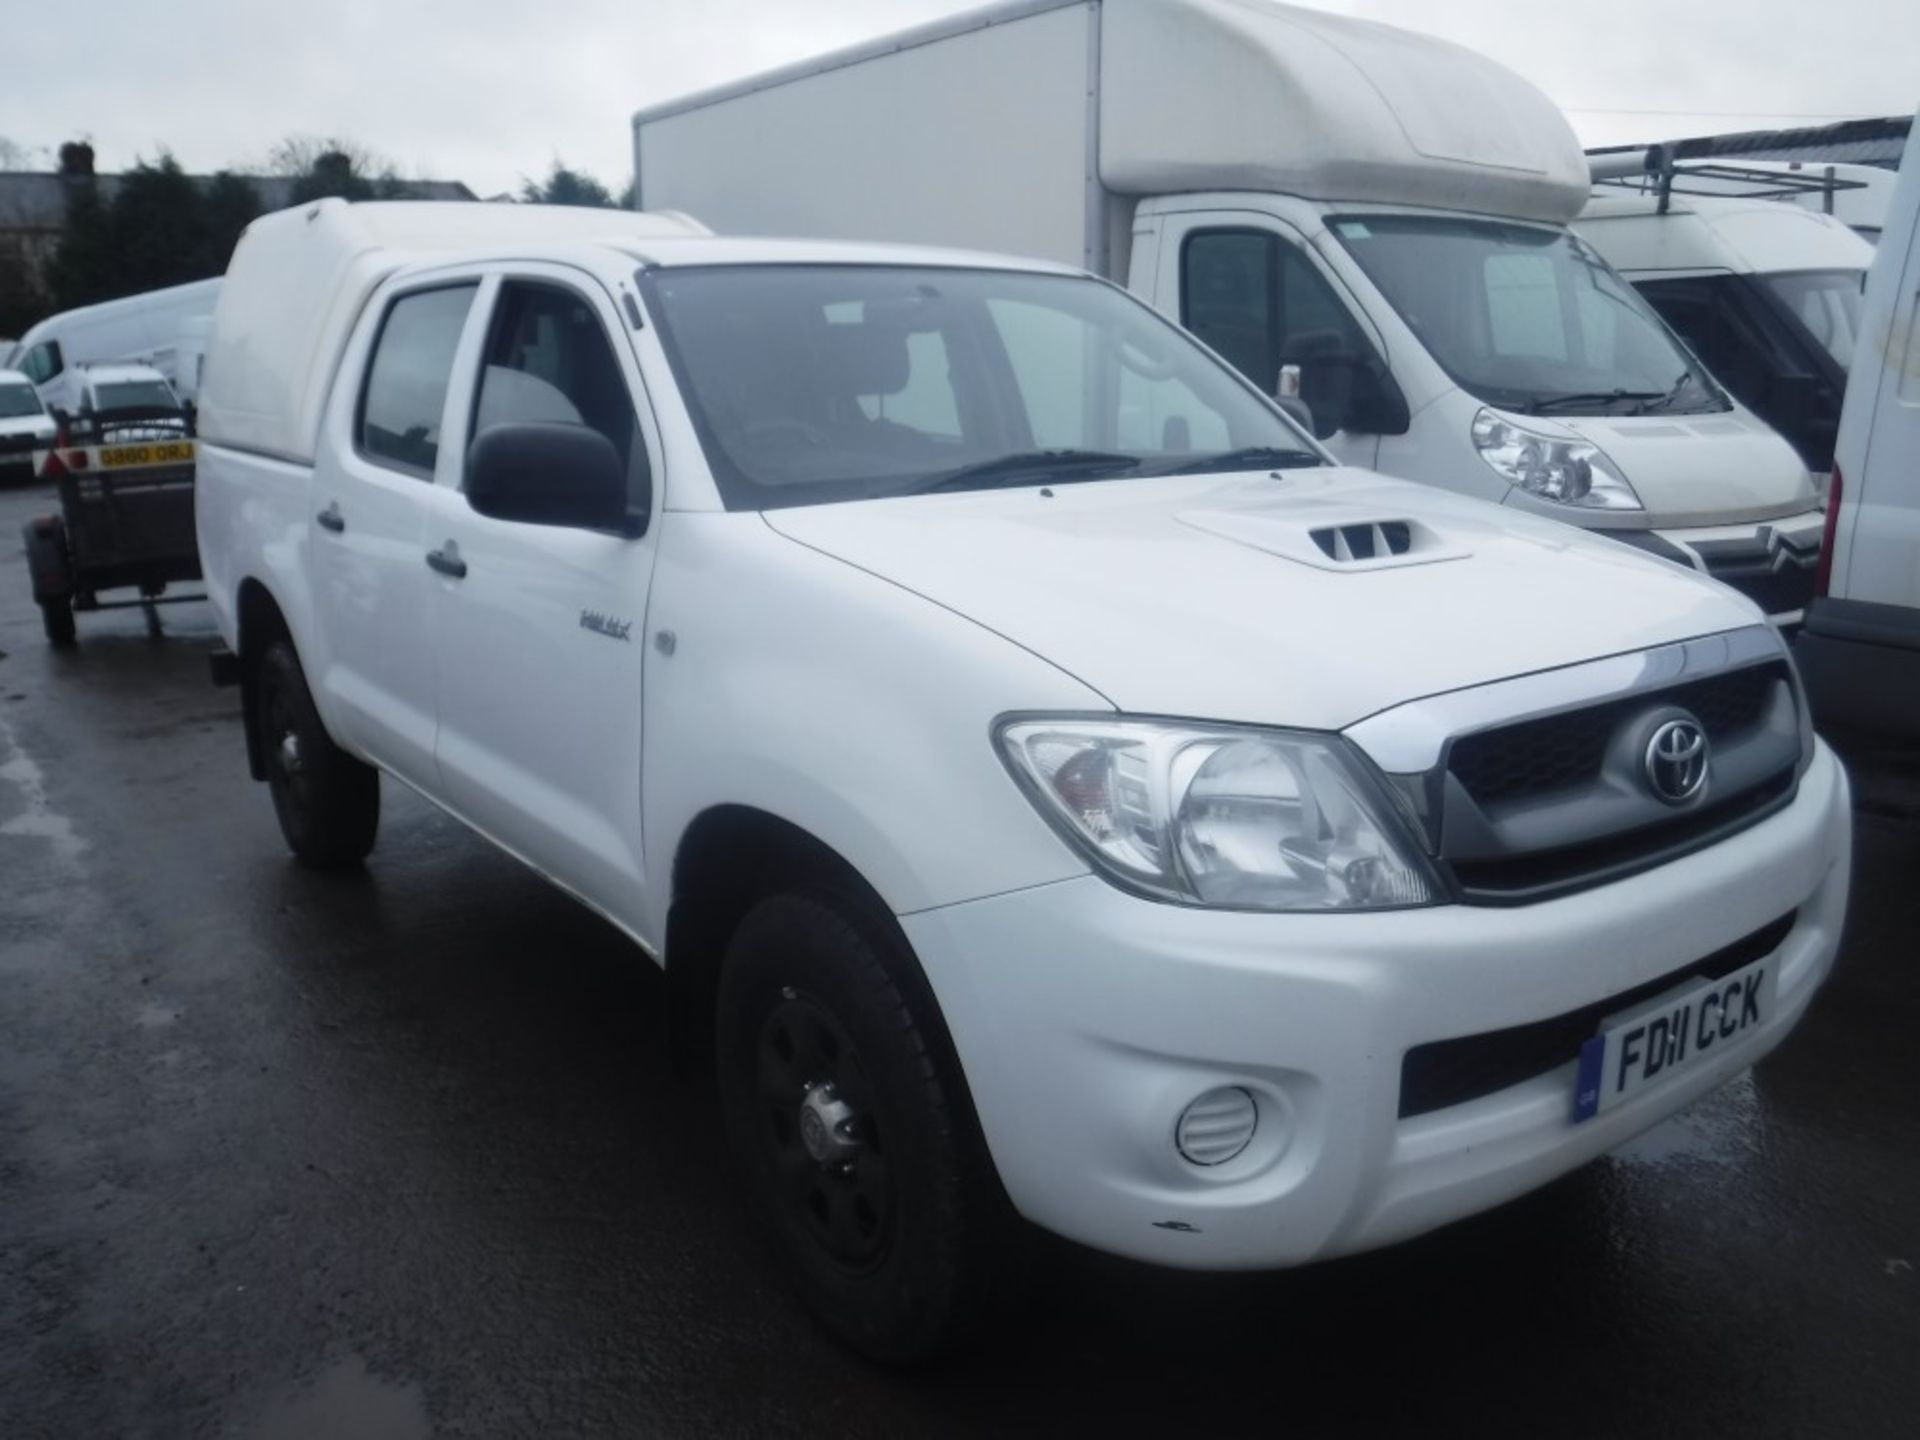 Lot 11 - 11 reg TOYOTA HI-LUX HL2 D-4D 4 X 4 DCB, 1ST REG 07/11, TEST 01/20, 85984M WARRANTED, V5 HERE, 1